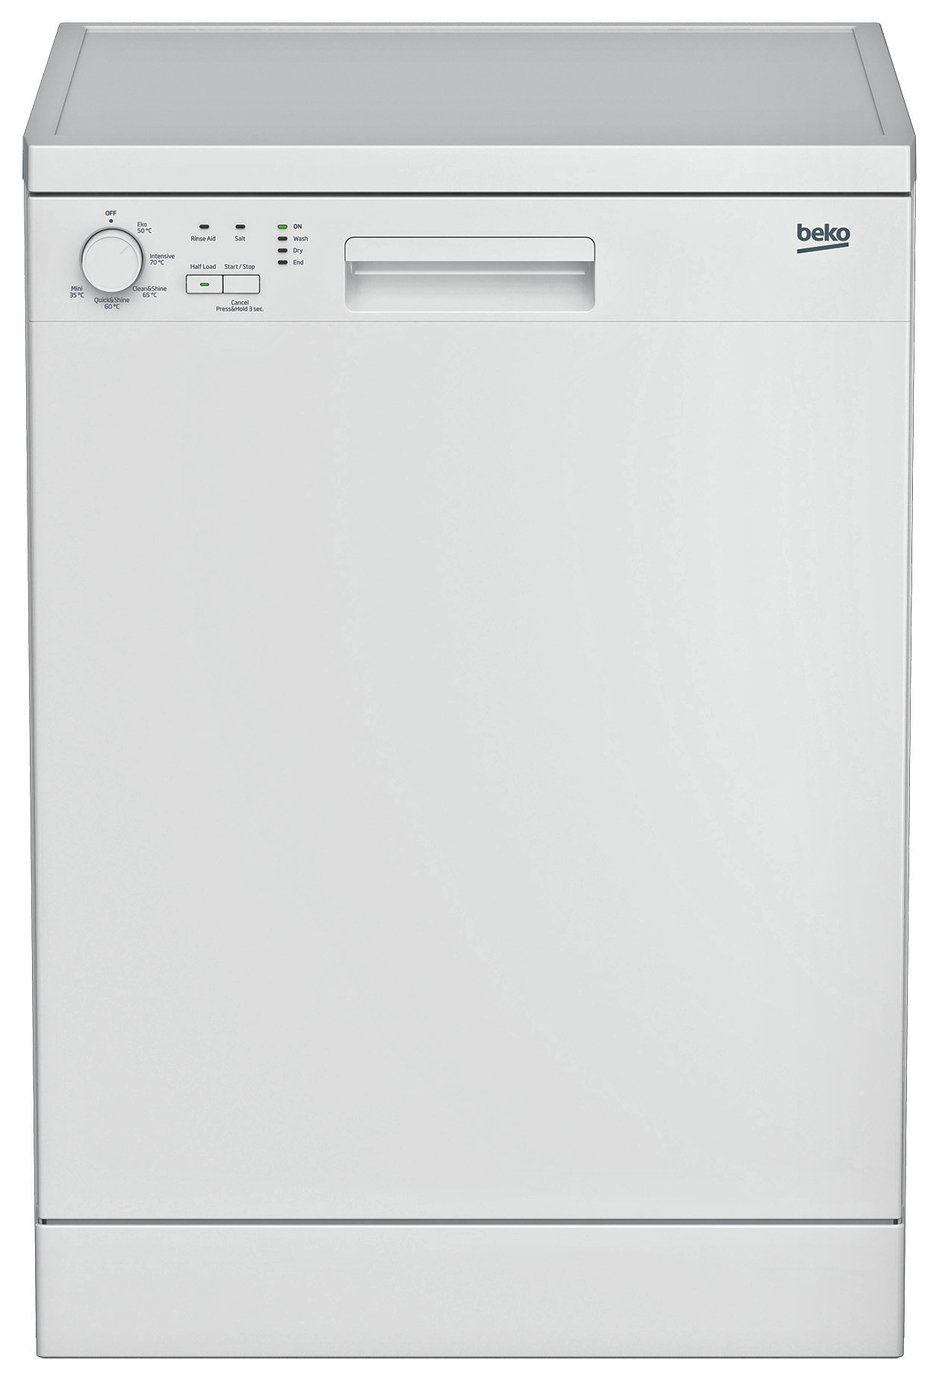 Beko DFN05310W Full Size Dishwasher - White